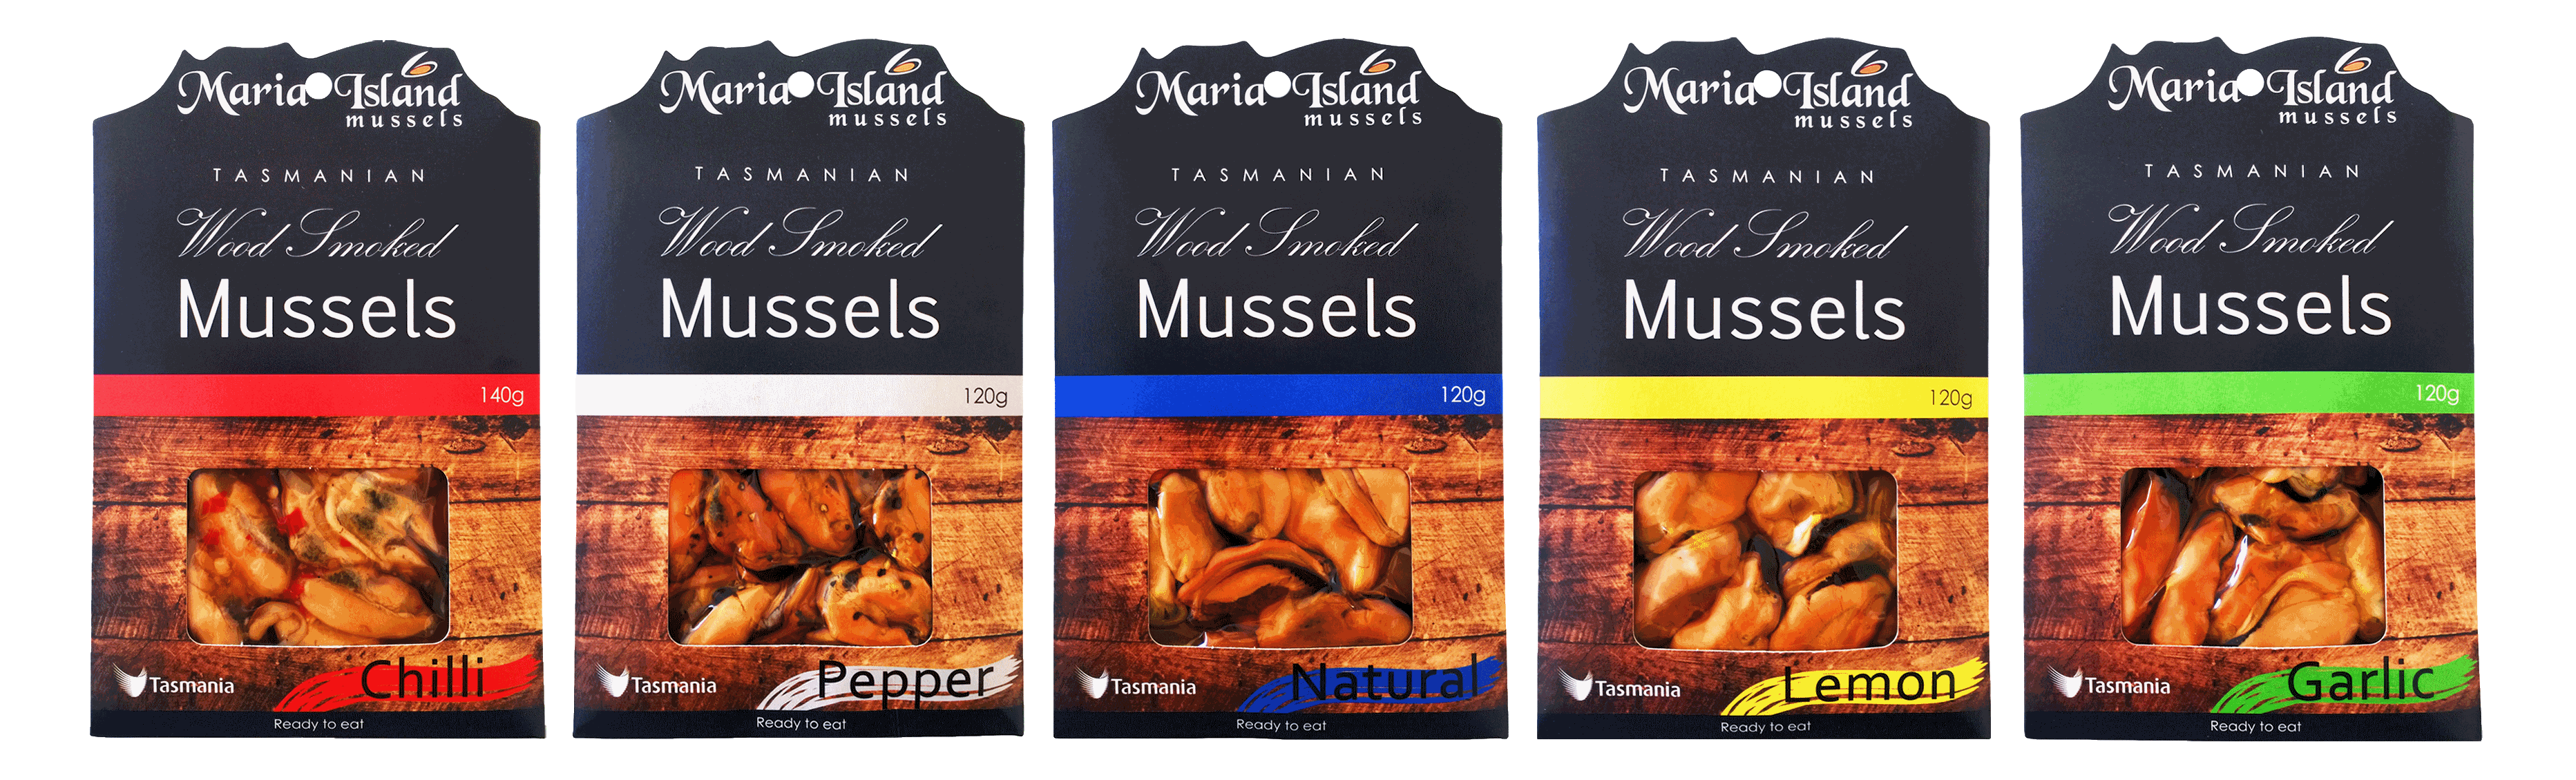 Maria Island Smoked Mussels